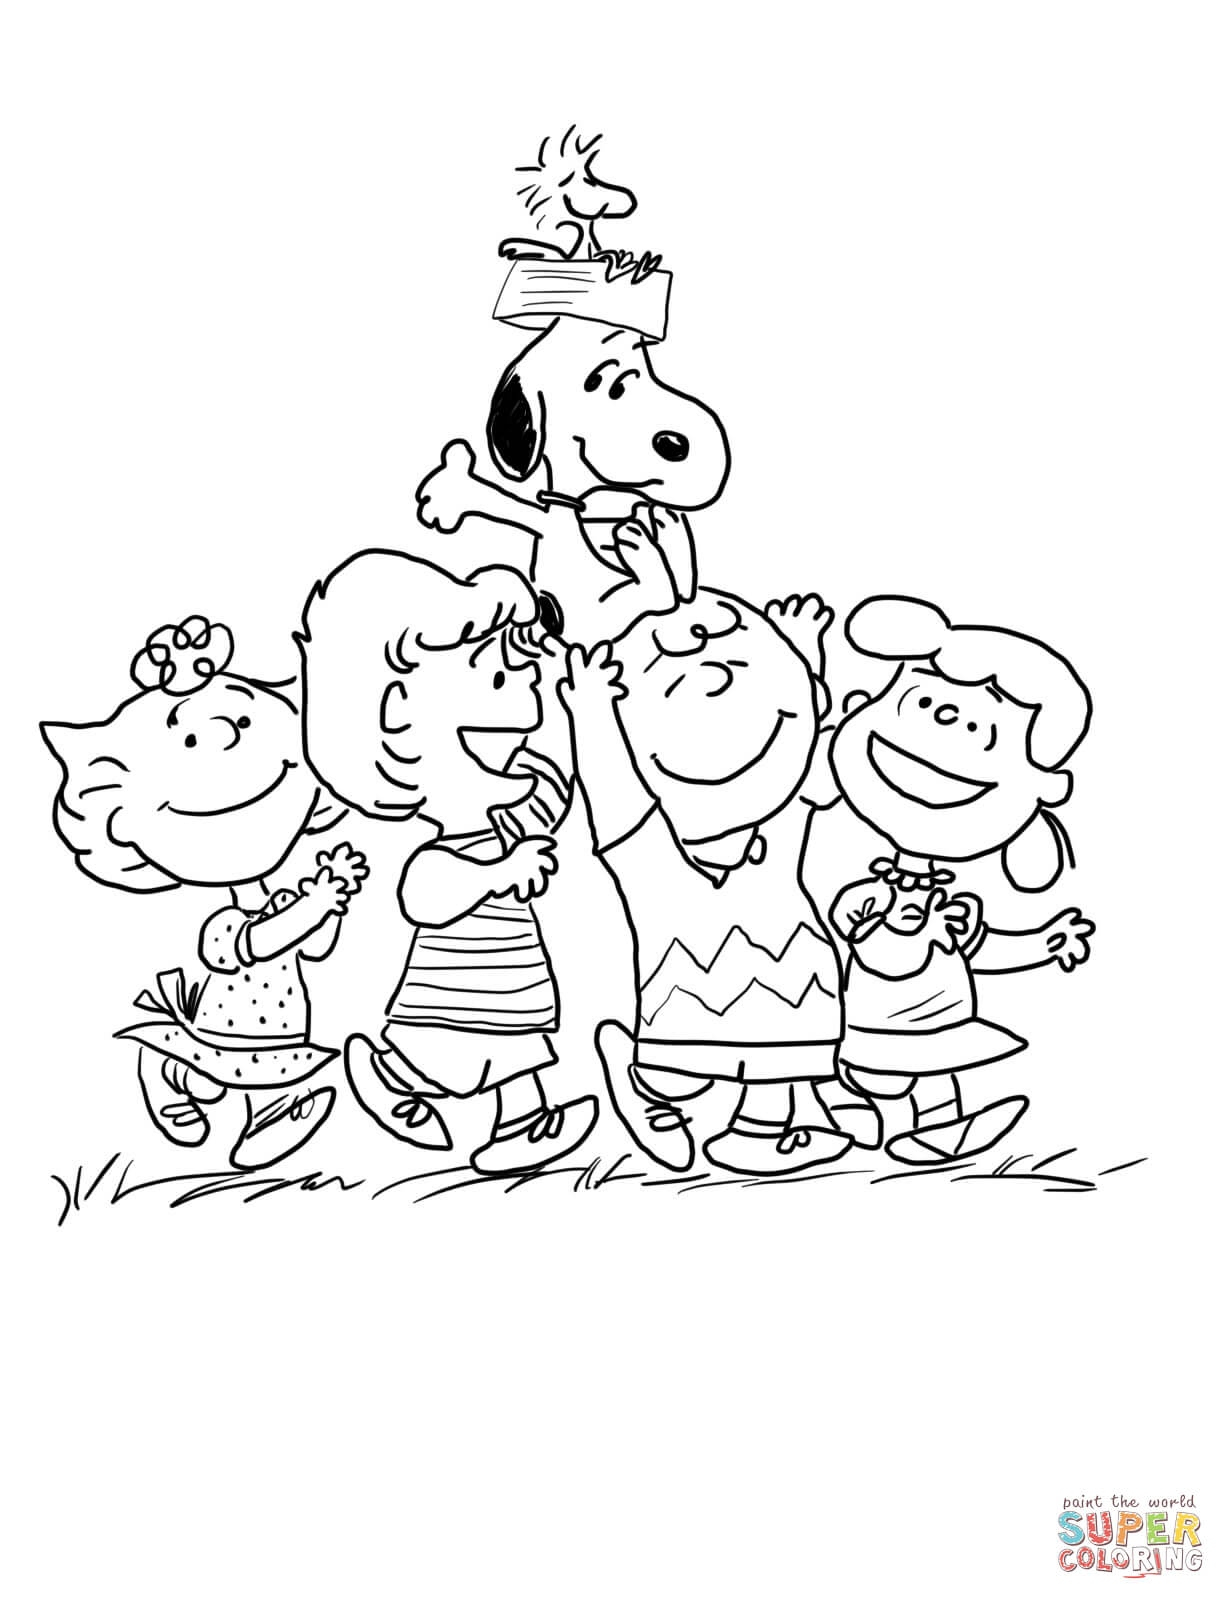 Snoopy And Woodstock Coloring Pages Woodstock Coloring Pages At Getdrawings Free For Personal Use